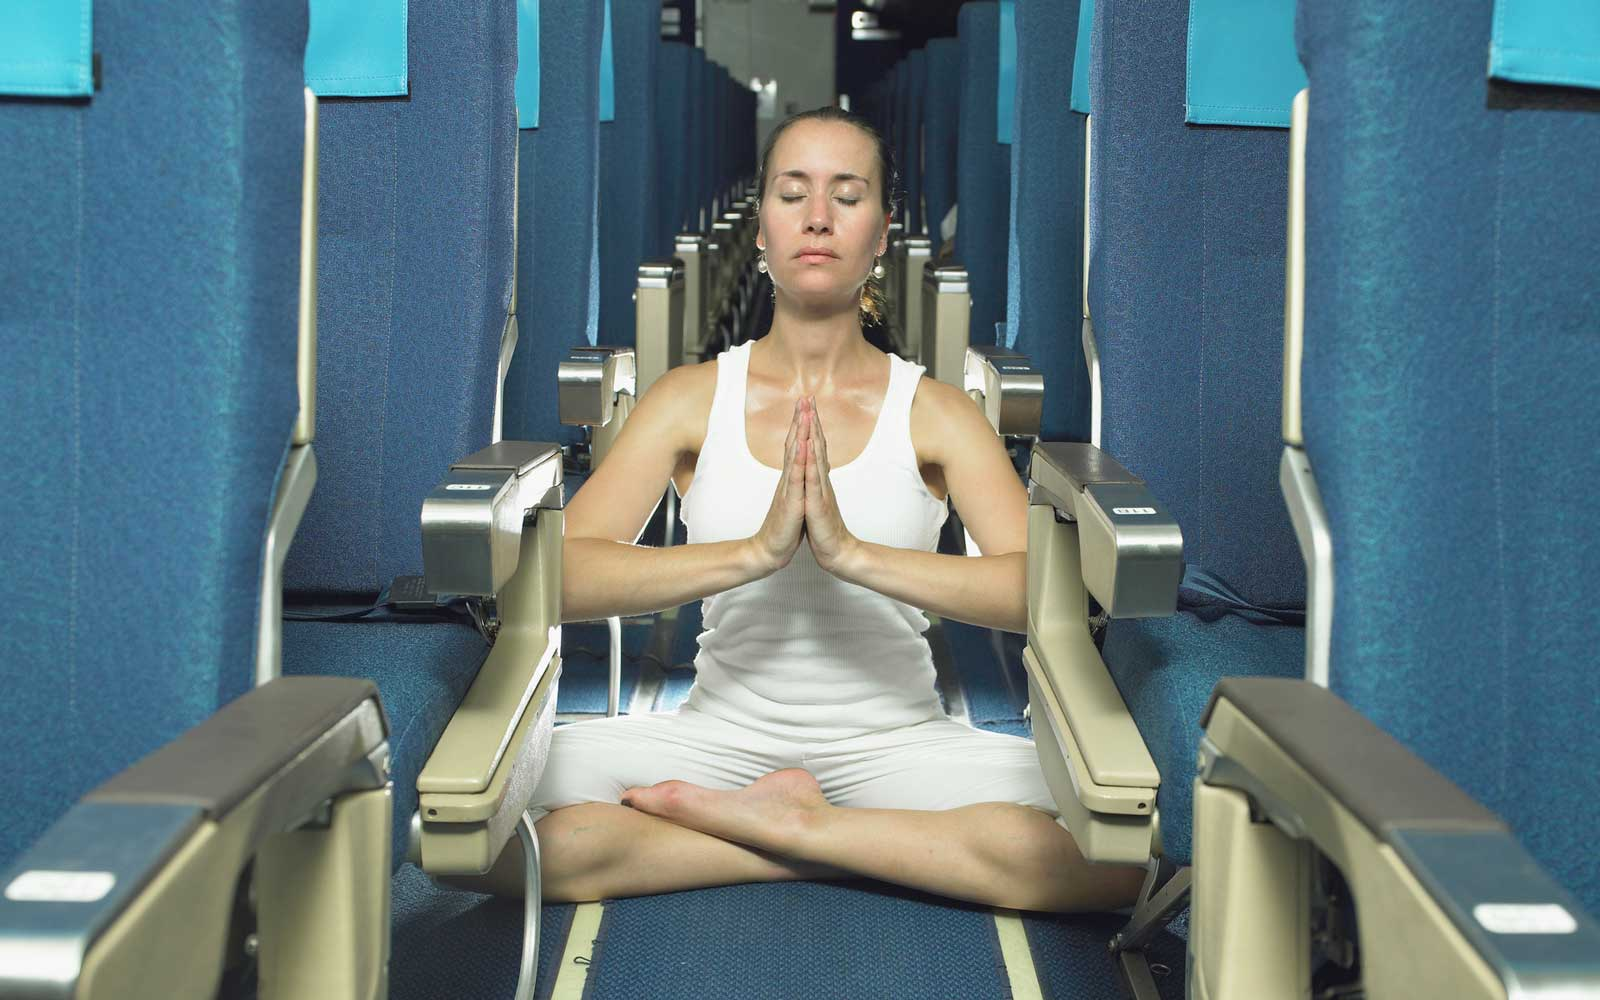 Watch This Woman Do a Full Yoga Routine Down the Aisle of an Airplane